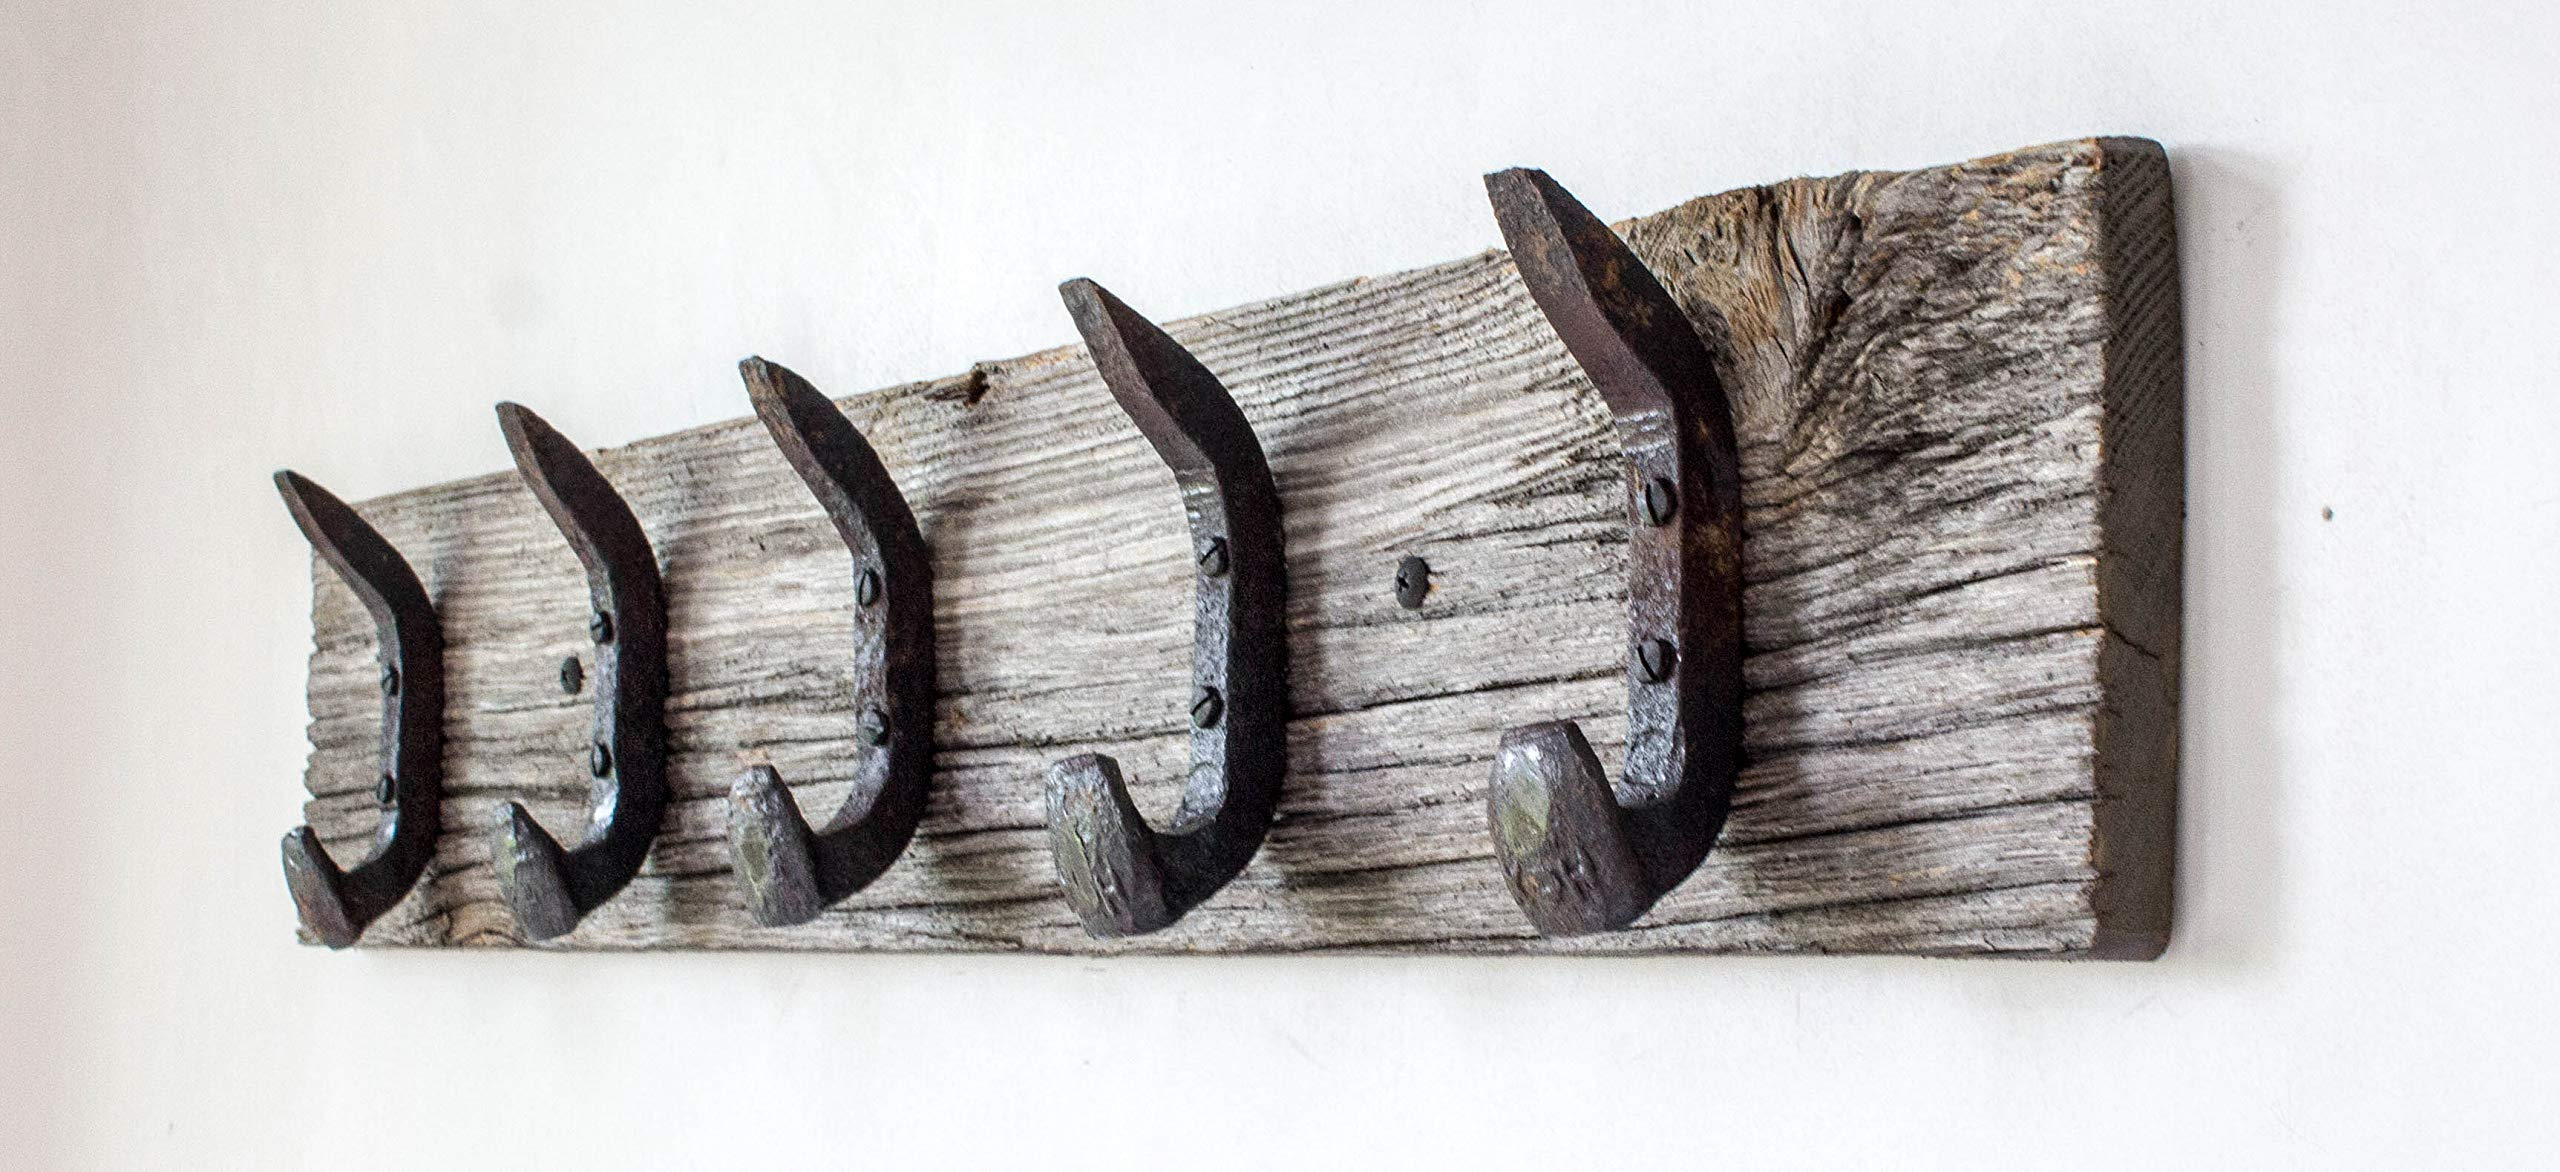 Vintage Rustic Coat Rack –Authentic Barn Wood Hanger Rack for Towels, Clothes, Hats, Bags–Antique Door & Wall Mounted 5-Hook Rail (Railroad Spike Double Hook- 32''x5¾''x 7/8'', Gray)